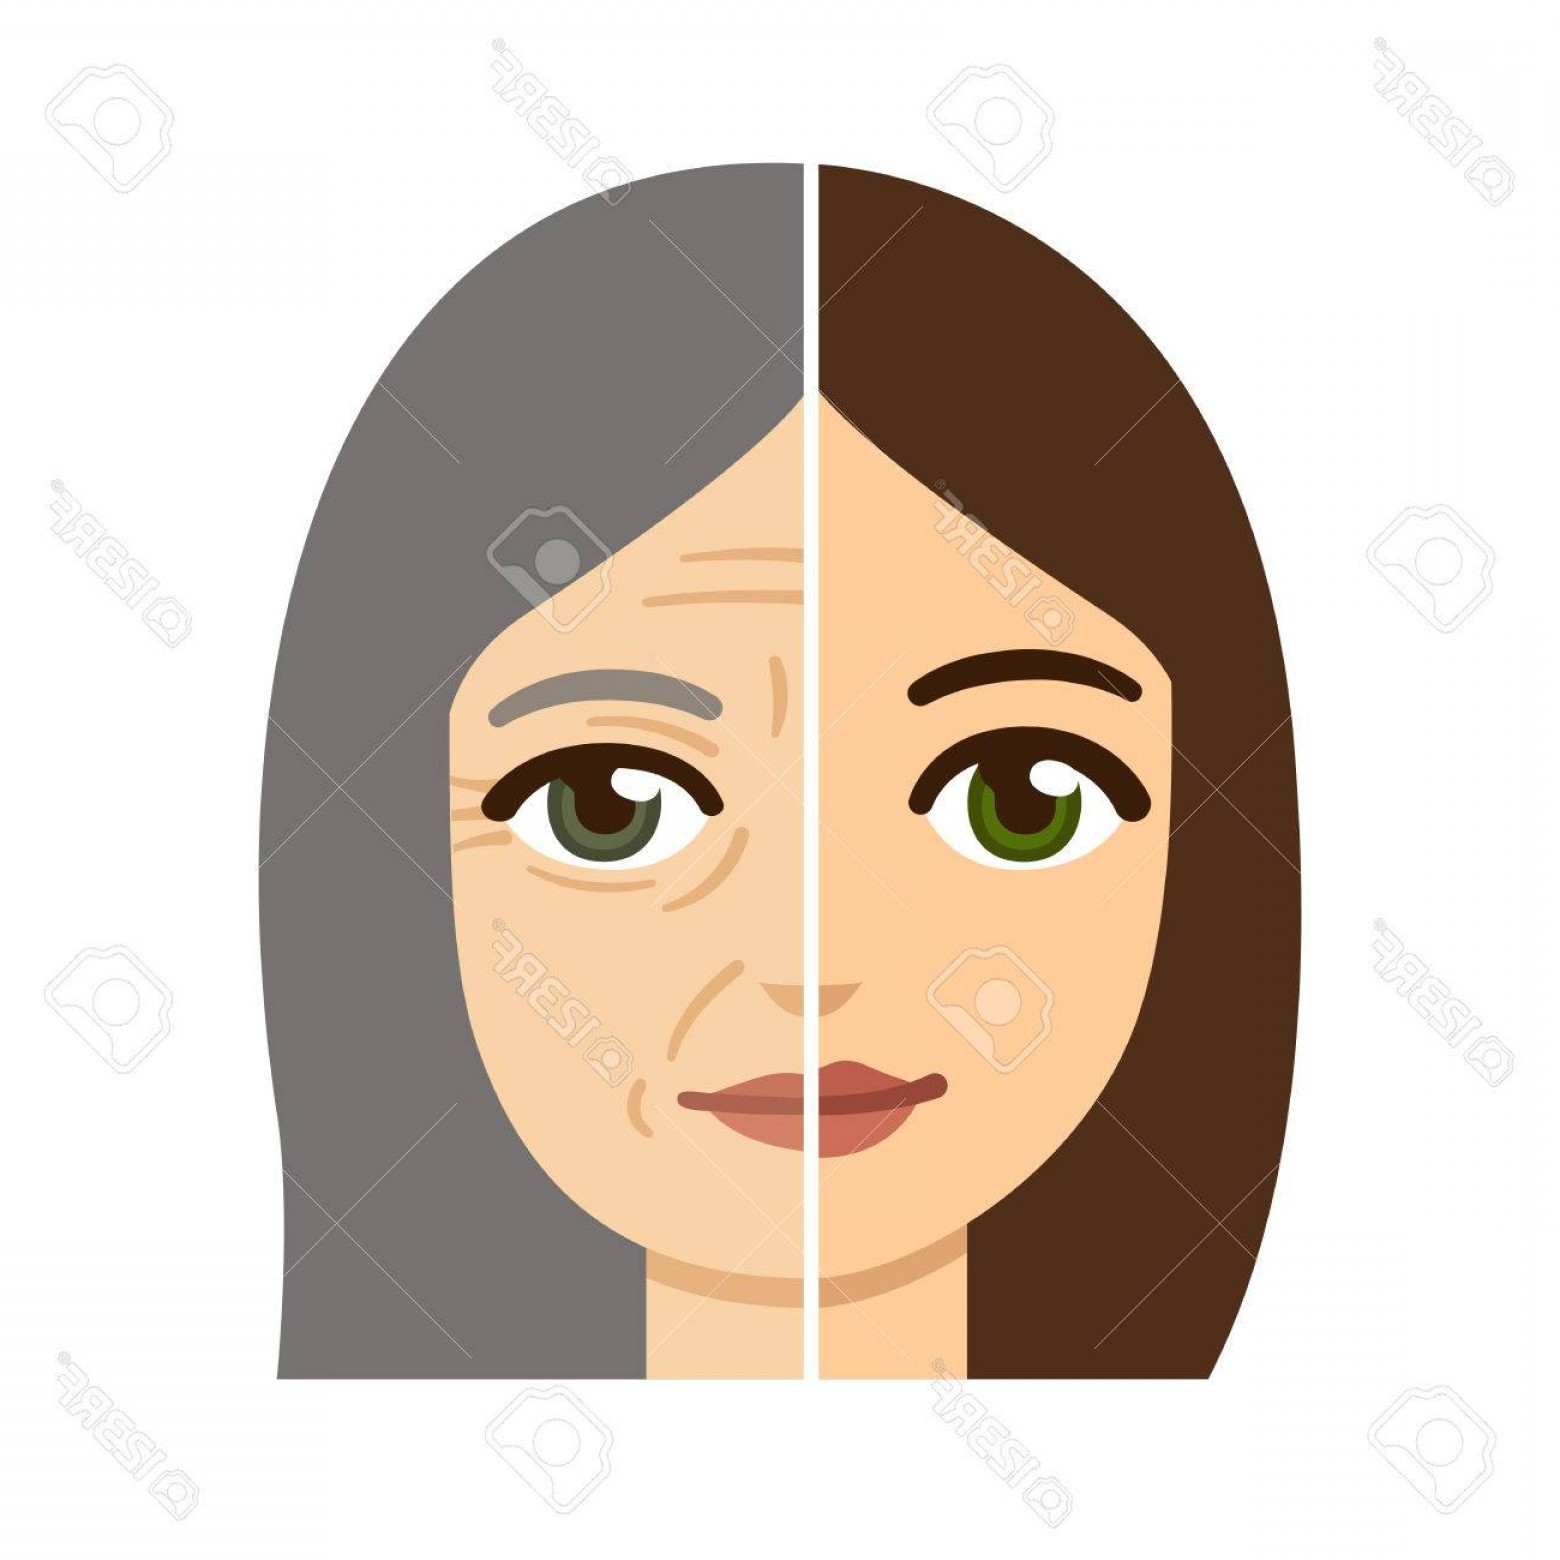 Lady Face Layers Vector: Photostock Vector Woman Facedivided In Half Young And Old With Wrinkles